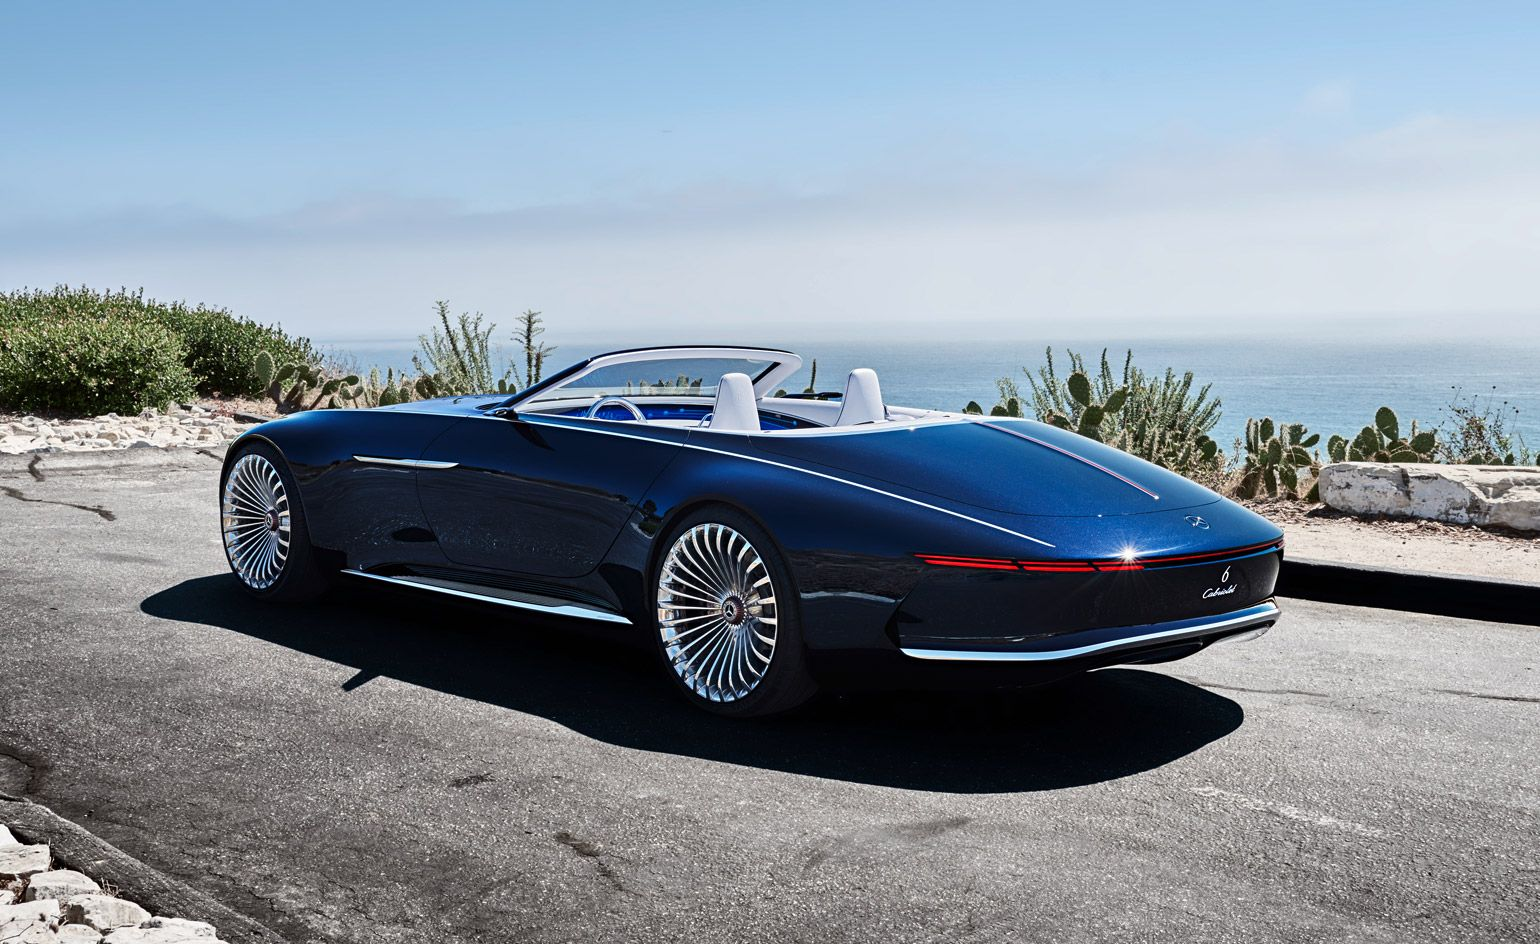 The New Reality Mercedes Maybach Unveils The Super Luxury Electric Car Of Tomorrow S World Mercedes Maybach Maybach Mercedes Benz Maybach